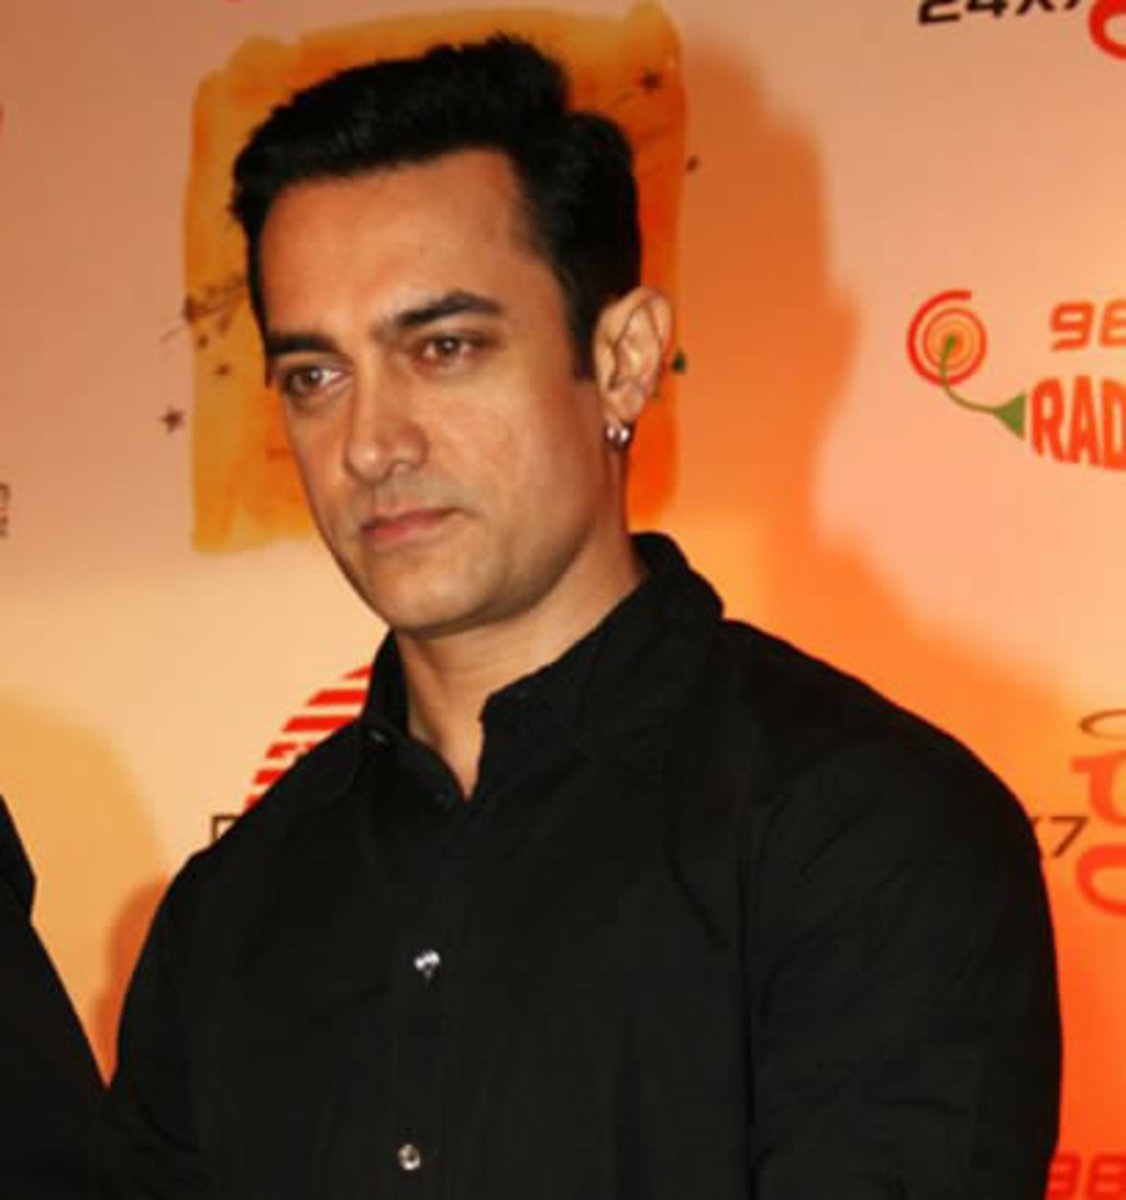 Aamir Khan; Get this dude a box of band-aids because he is cut-up (in the movie)